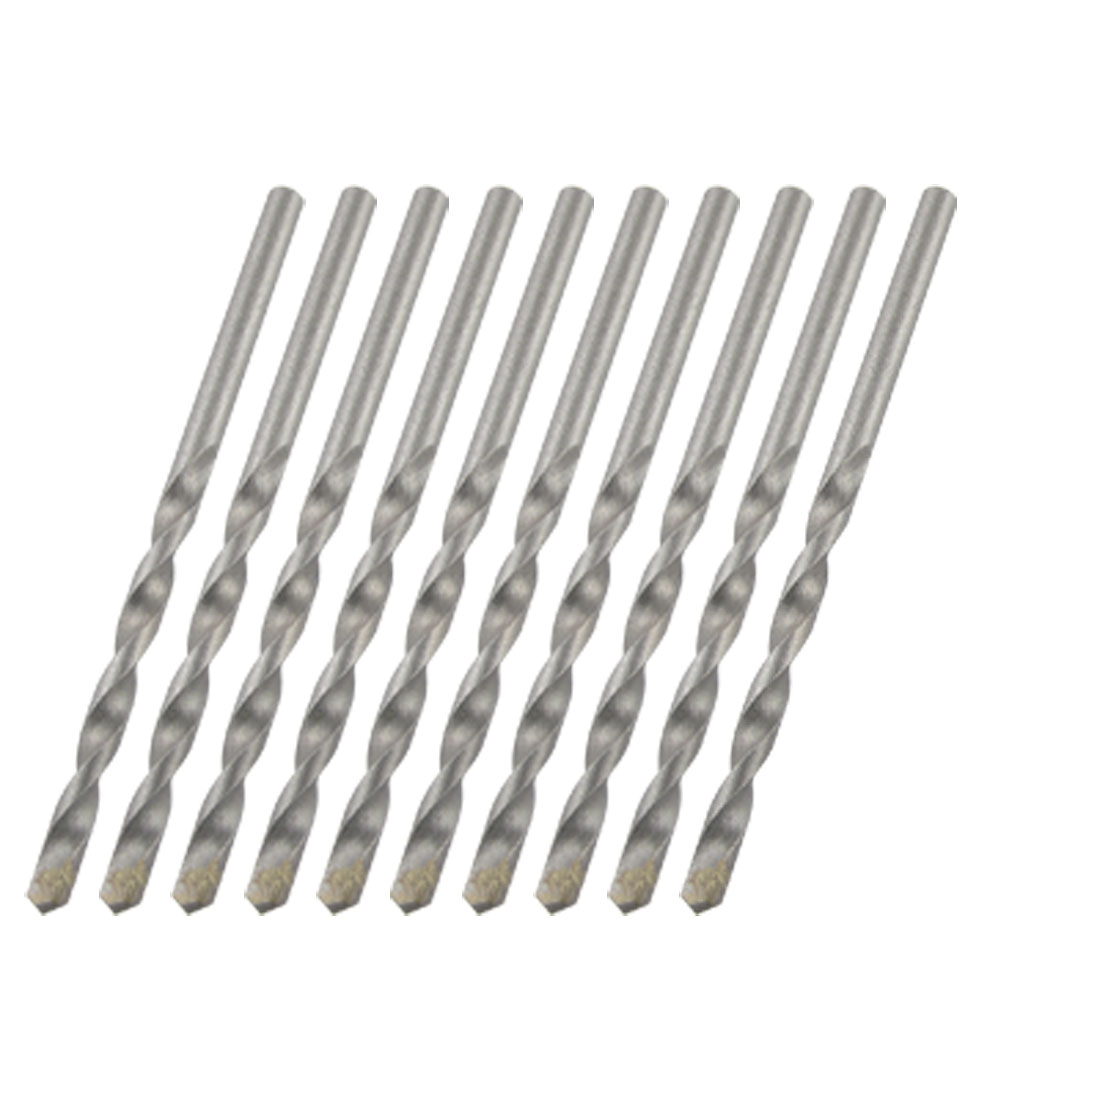 4mm Width Tip U-flute Percussion Masonry Drill Bits 10pcs for Hammering